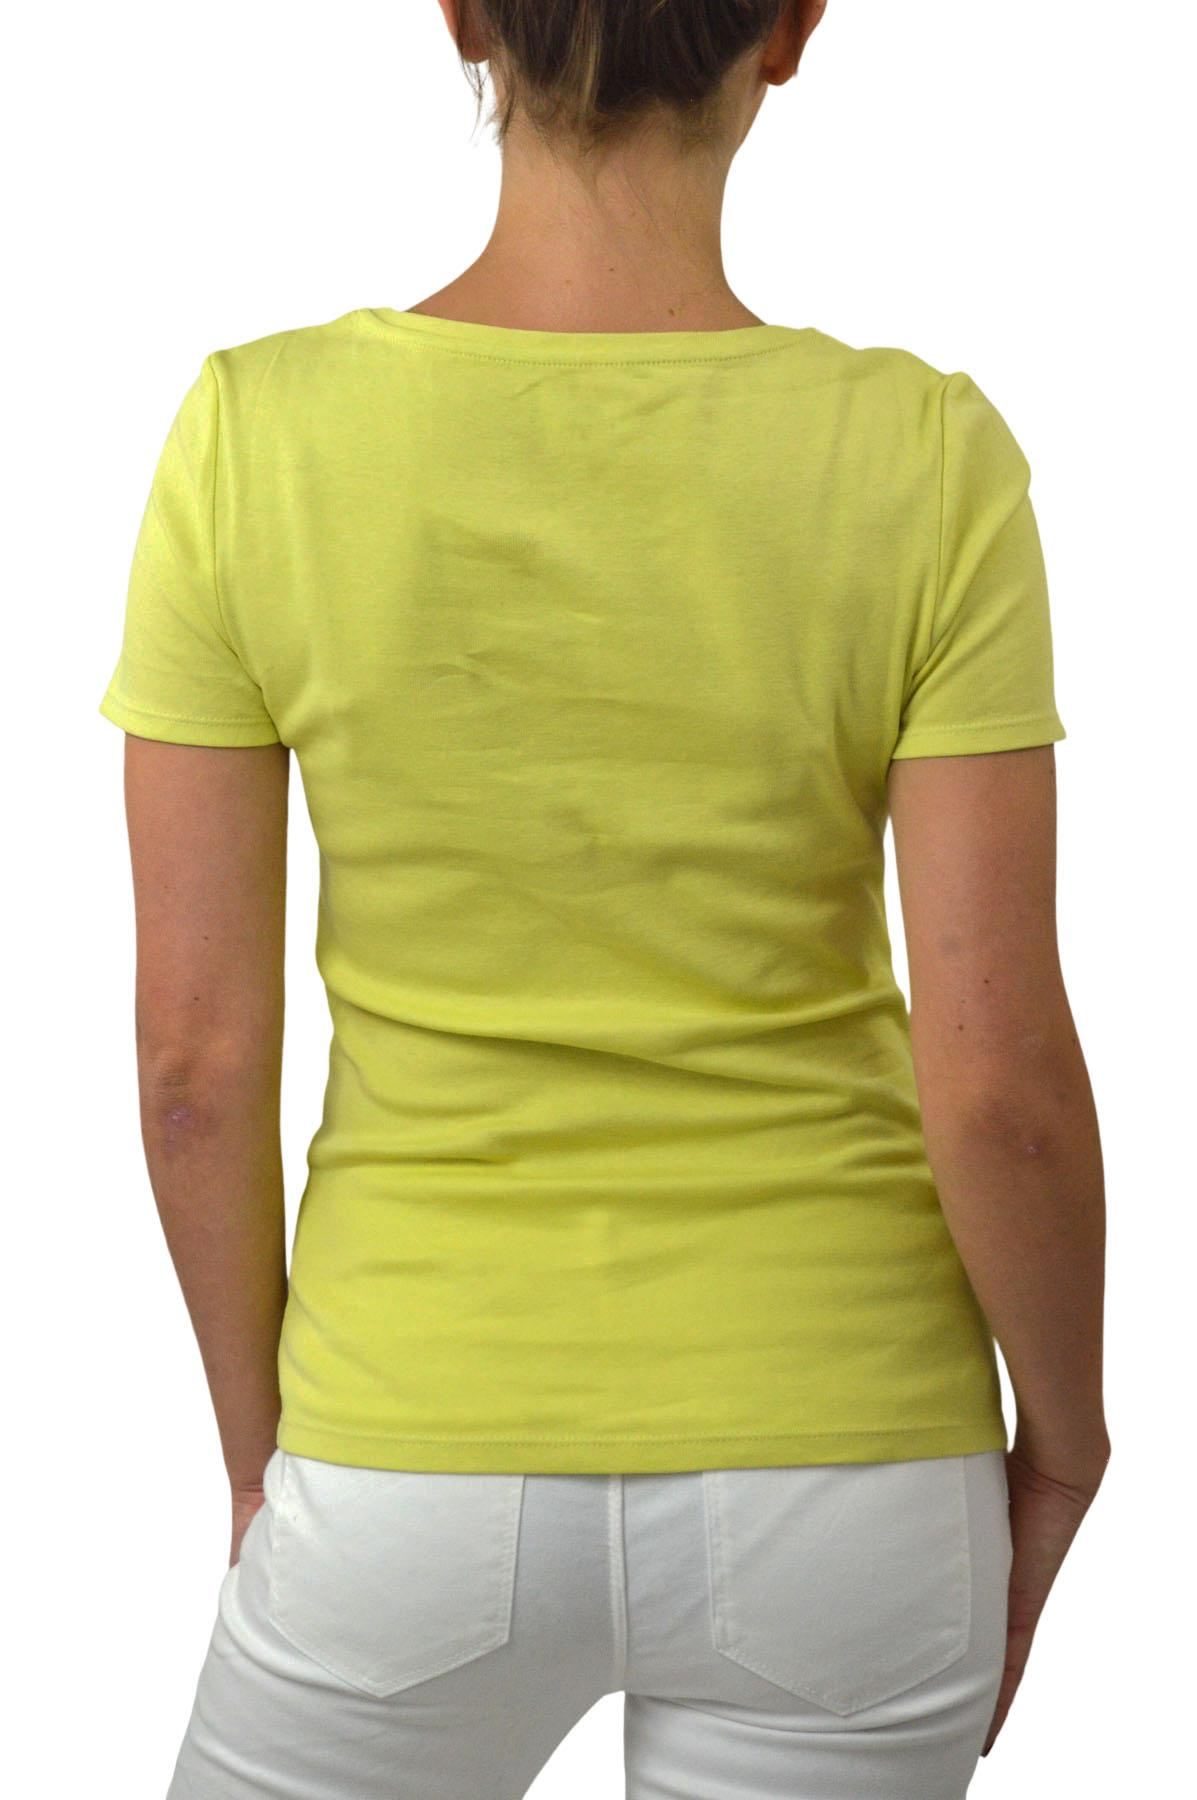 NEW-Ex-M-amp-S-Ladies-Short-Sleeve-Cotton-T-Shirt-Slim-Fit-Curved-Hem-Size-4-to-24 thumbnail 13